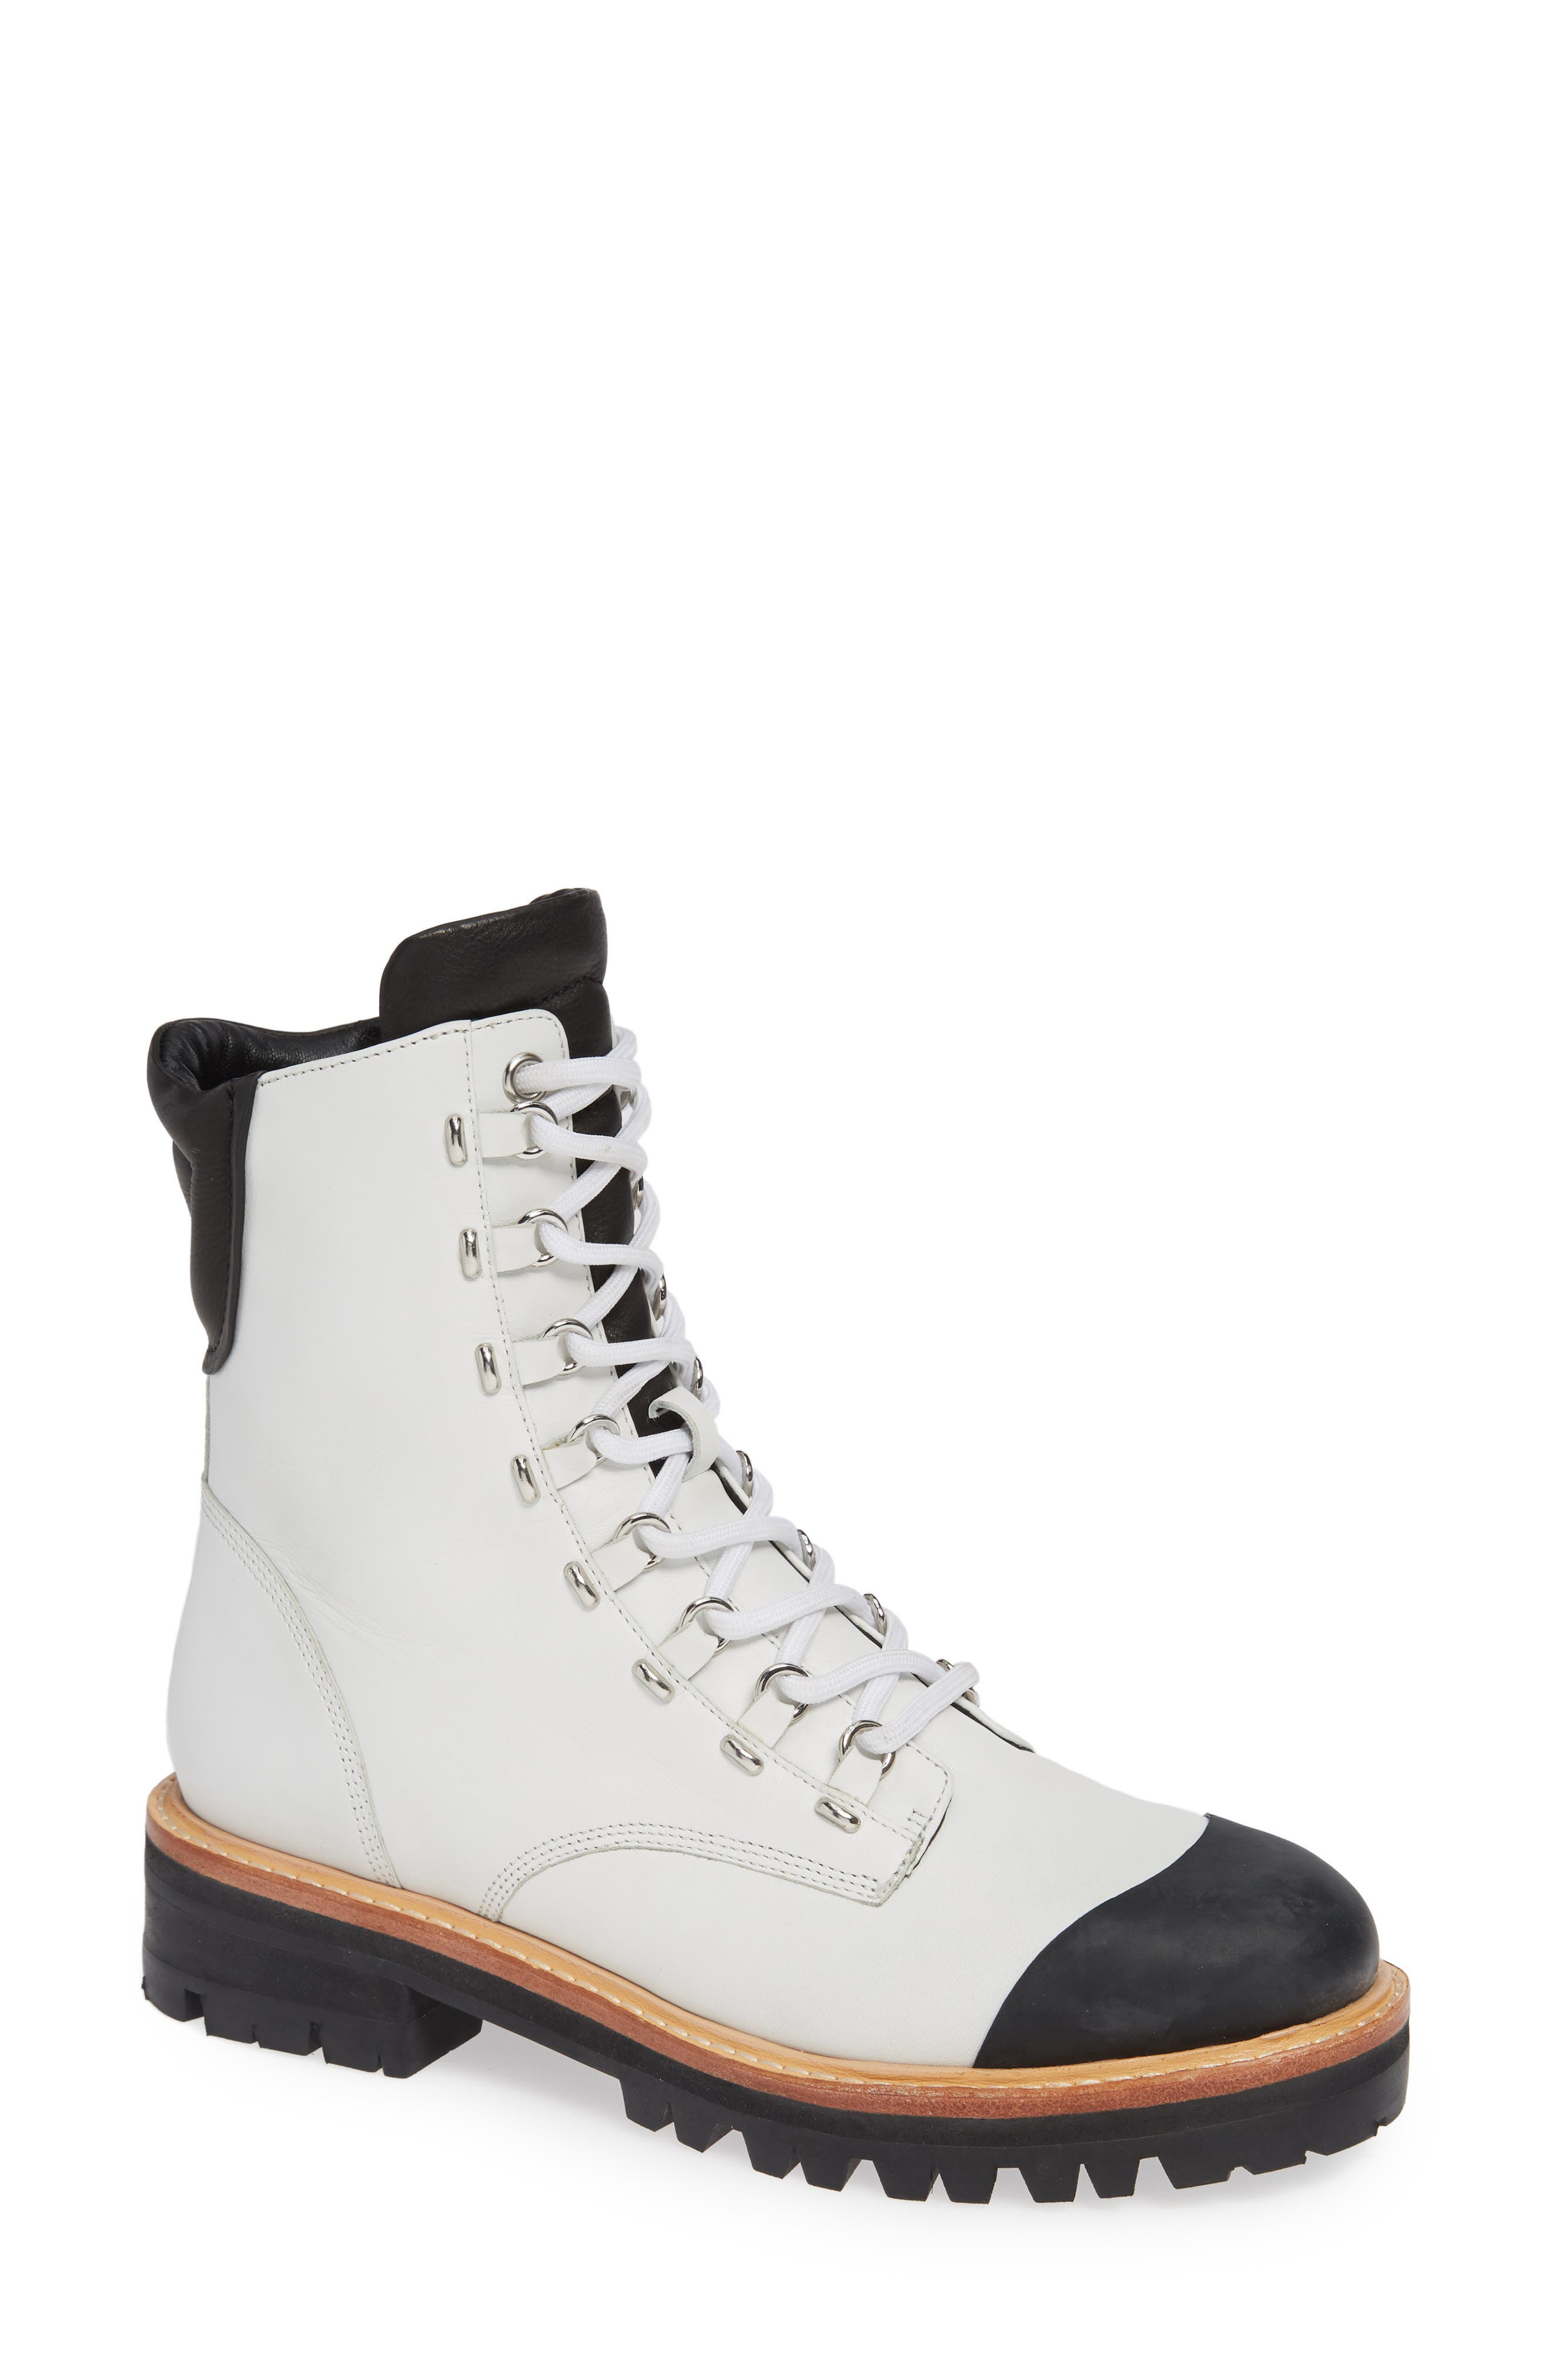 SIGERSON MORRISON Women'S Irene Round Toe Leather Boots in Bianco/ Black